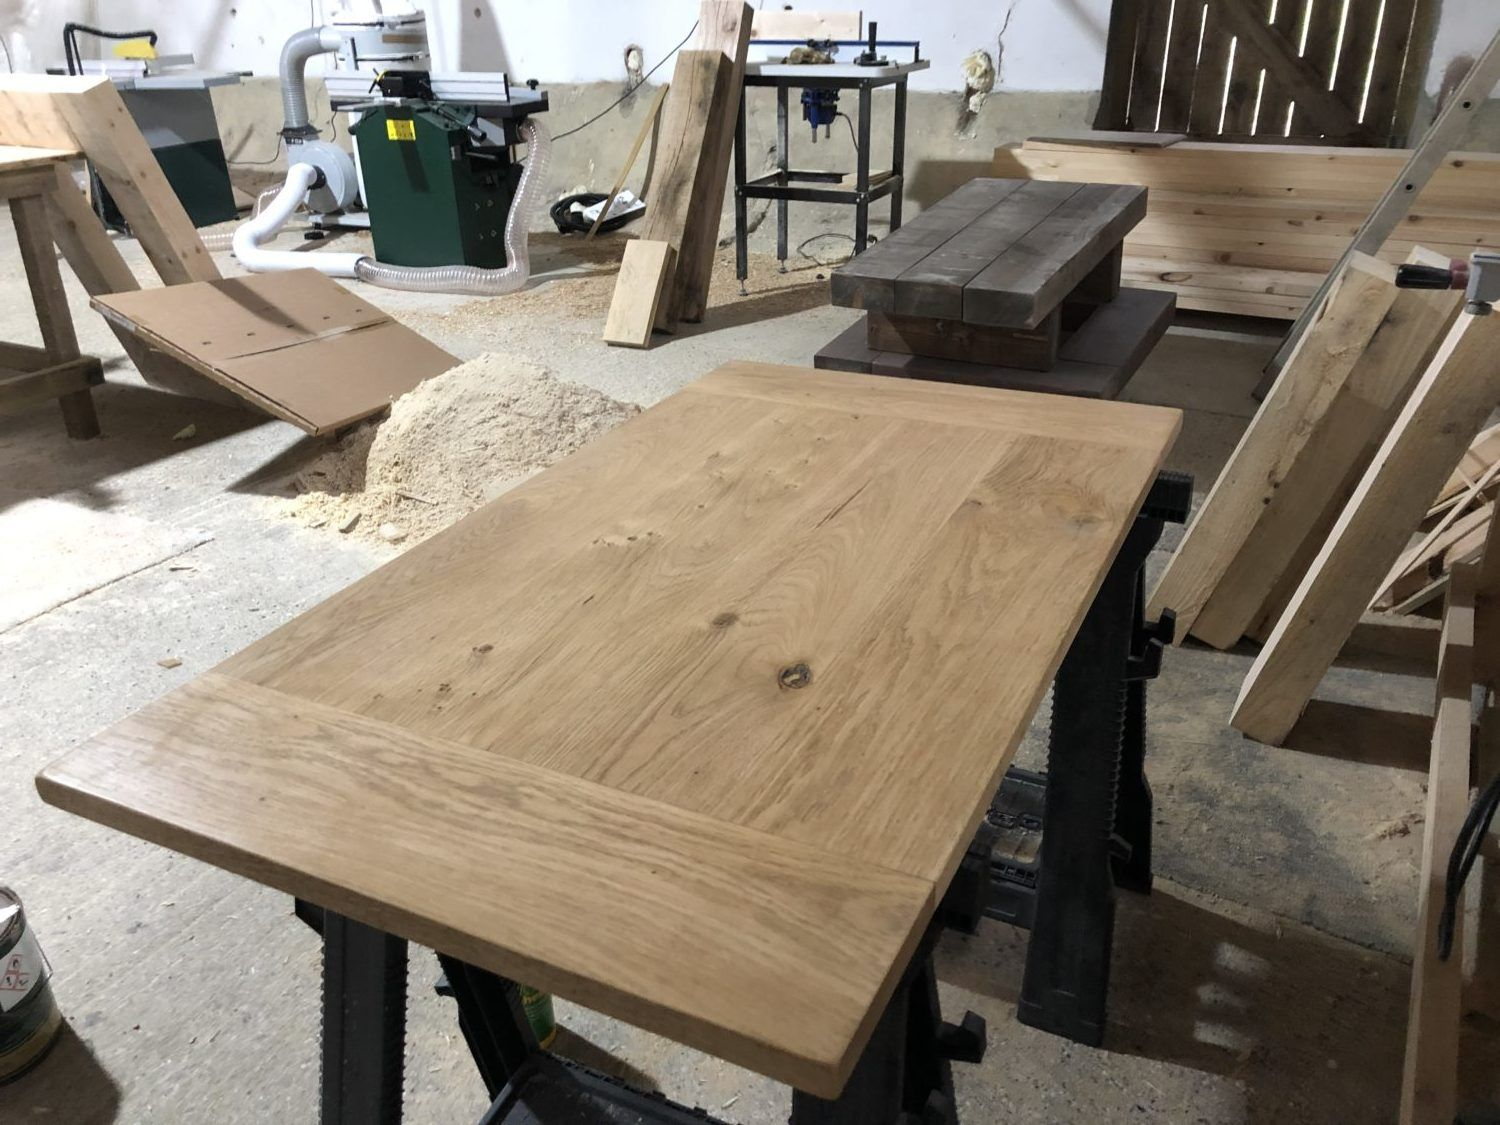 Custom Size Solid Oak Or Pine Table Top Desk Top To Fit Any Desk Frame Legs In 2020 Pine Table Solid Wood Desk Table